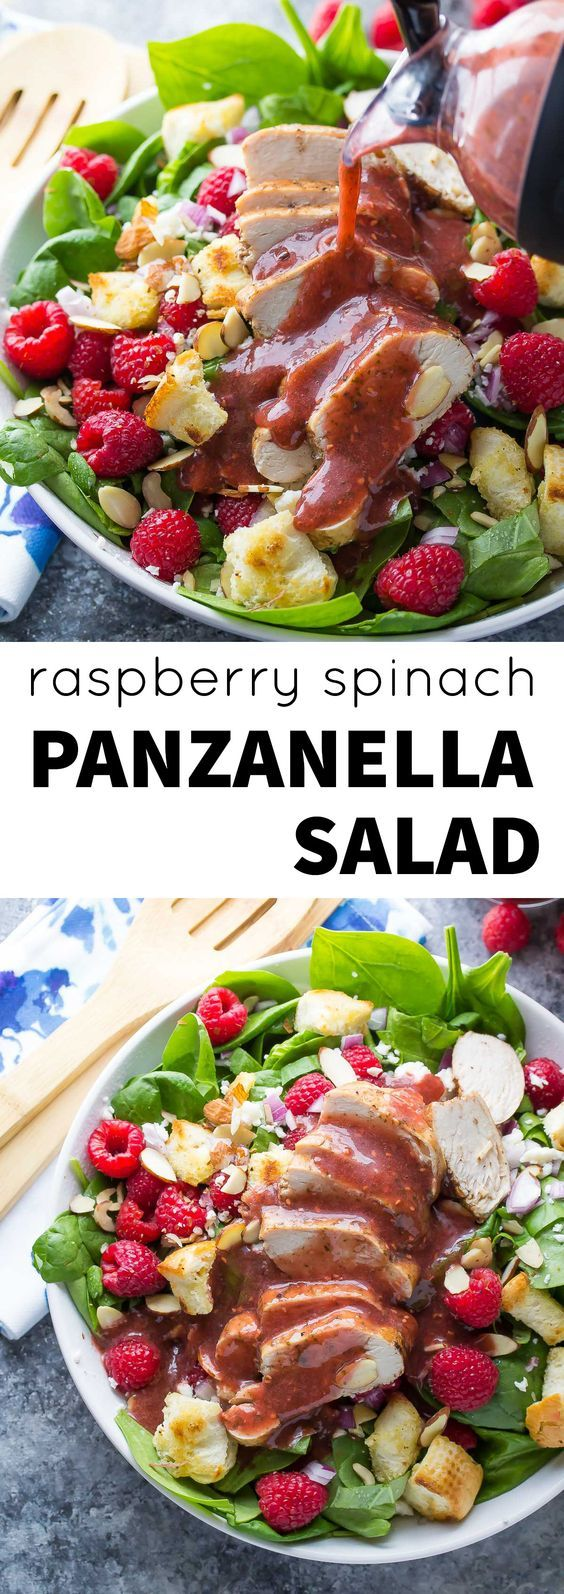 Raspberry Spinach Panzanella Salad with Chicken and a Raspberry Basil Vinaigrette